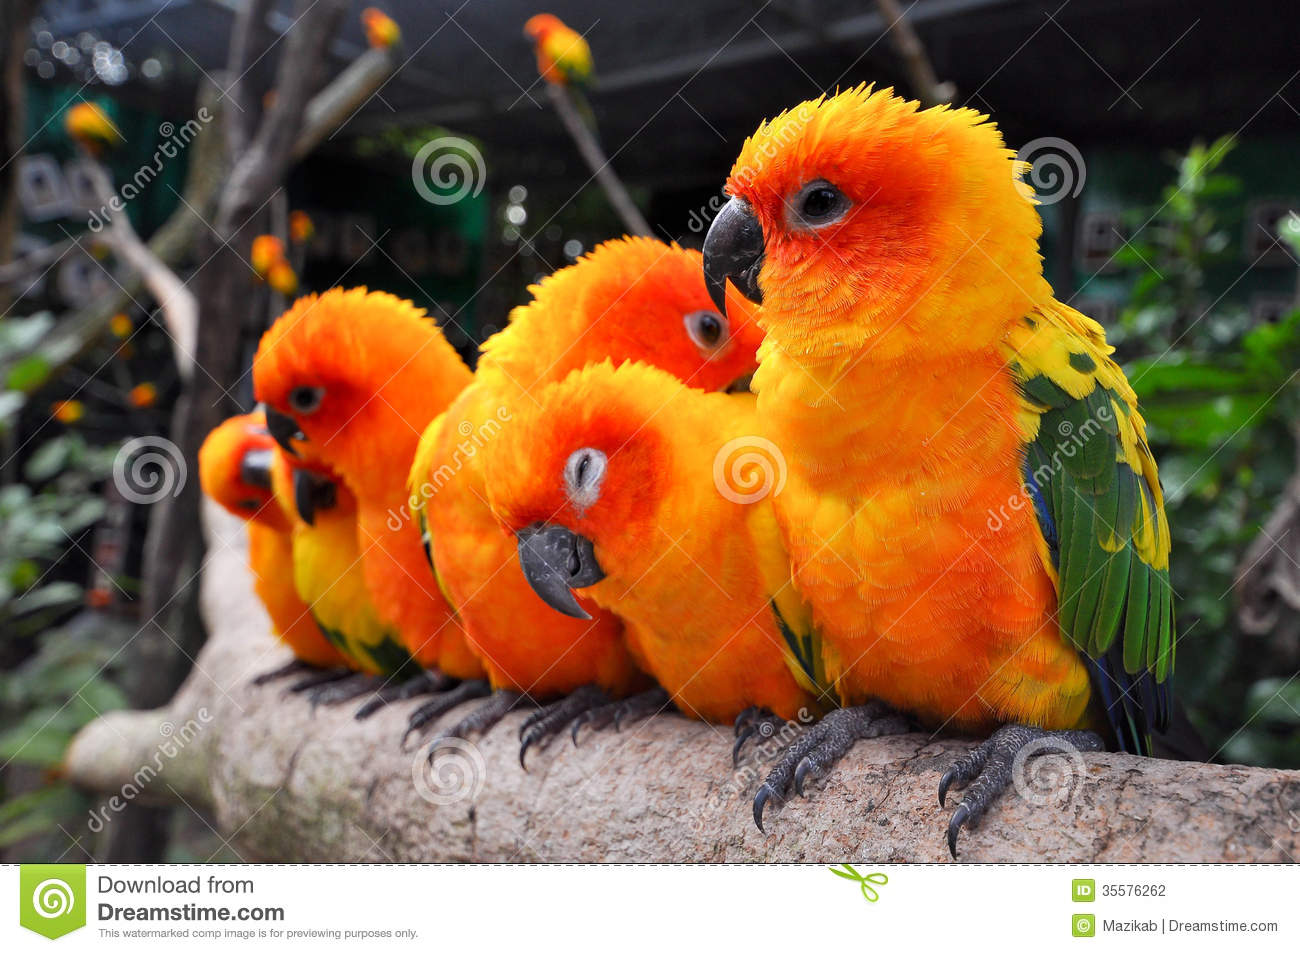 ... -sized brightly colored parrot native to northeastern South America